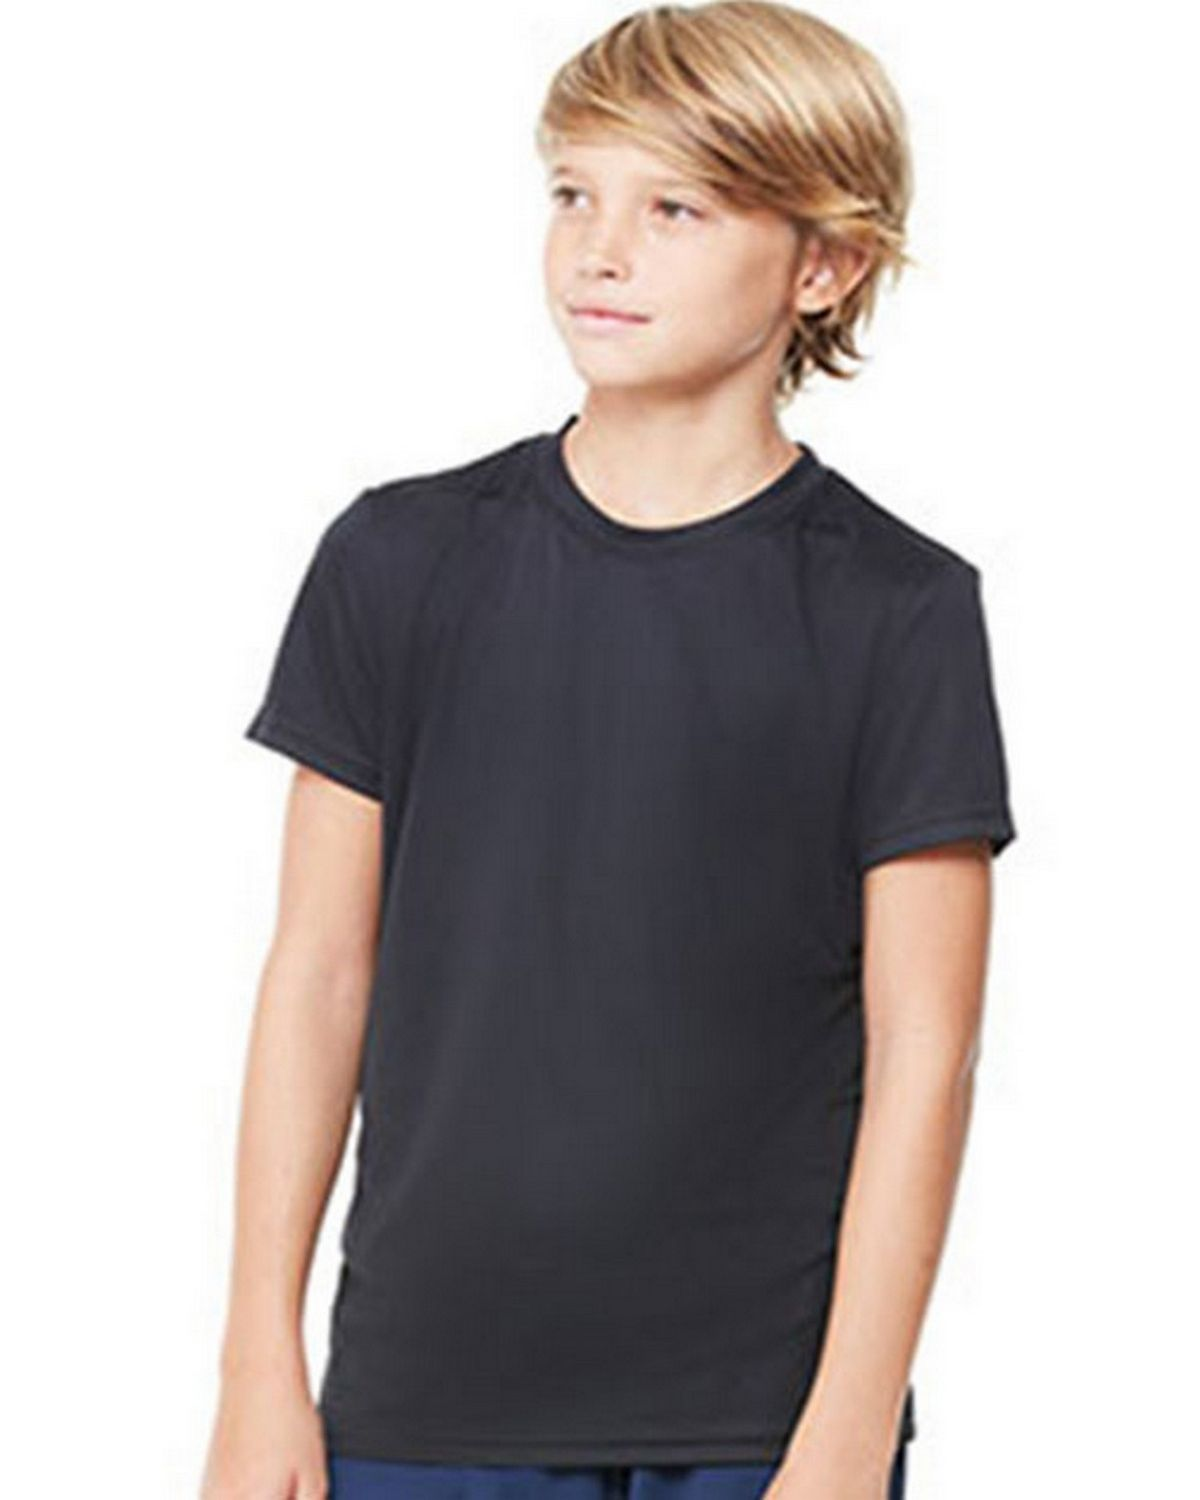 All Sport M1009Y Youth Short Sleeve Tee - Black - L M1009Y